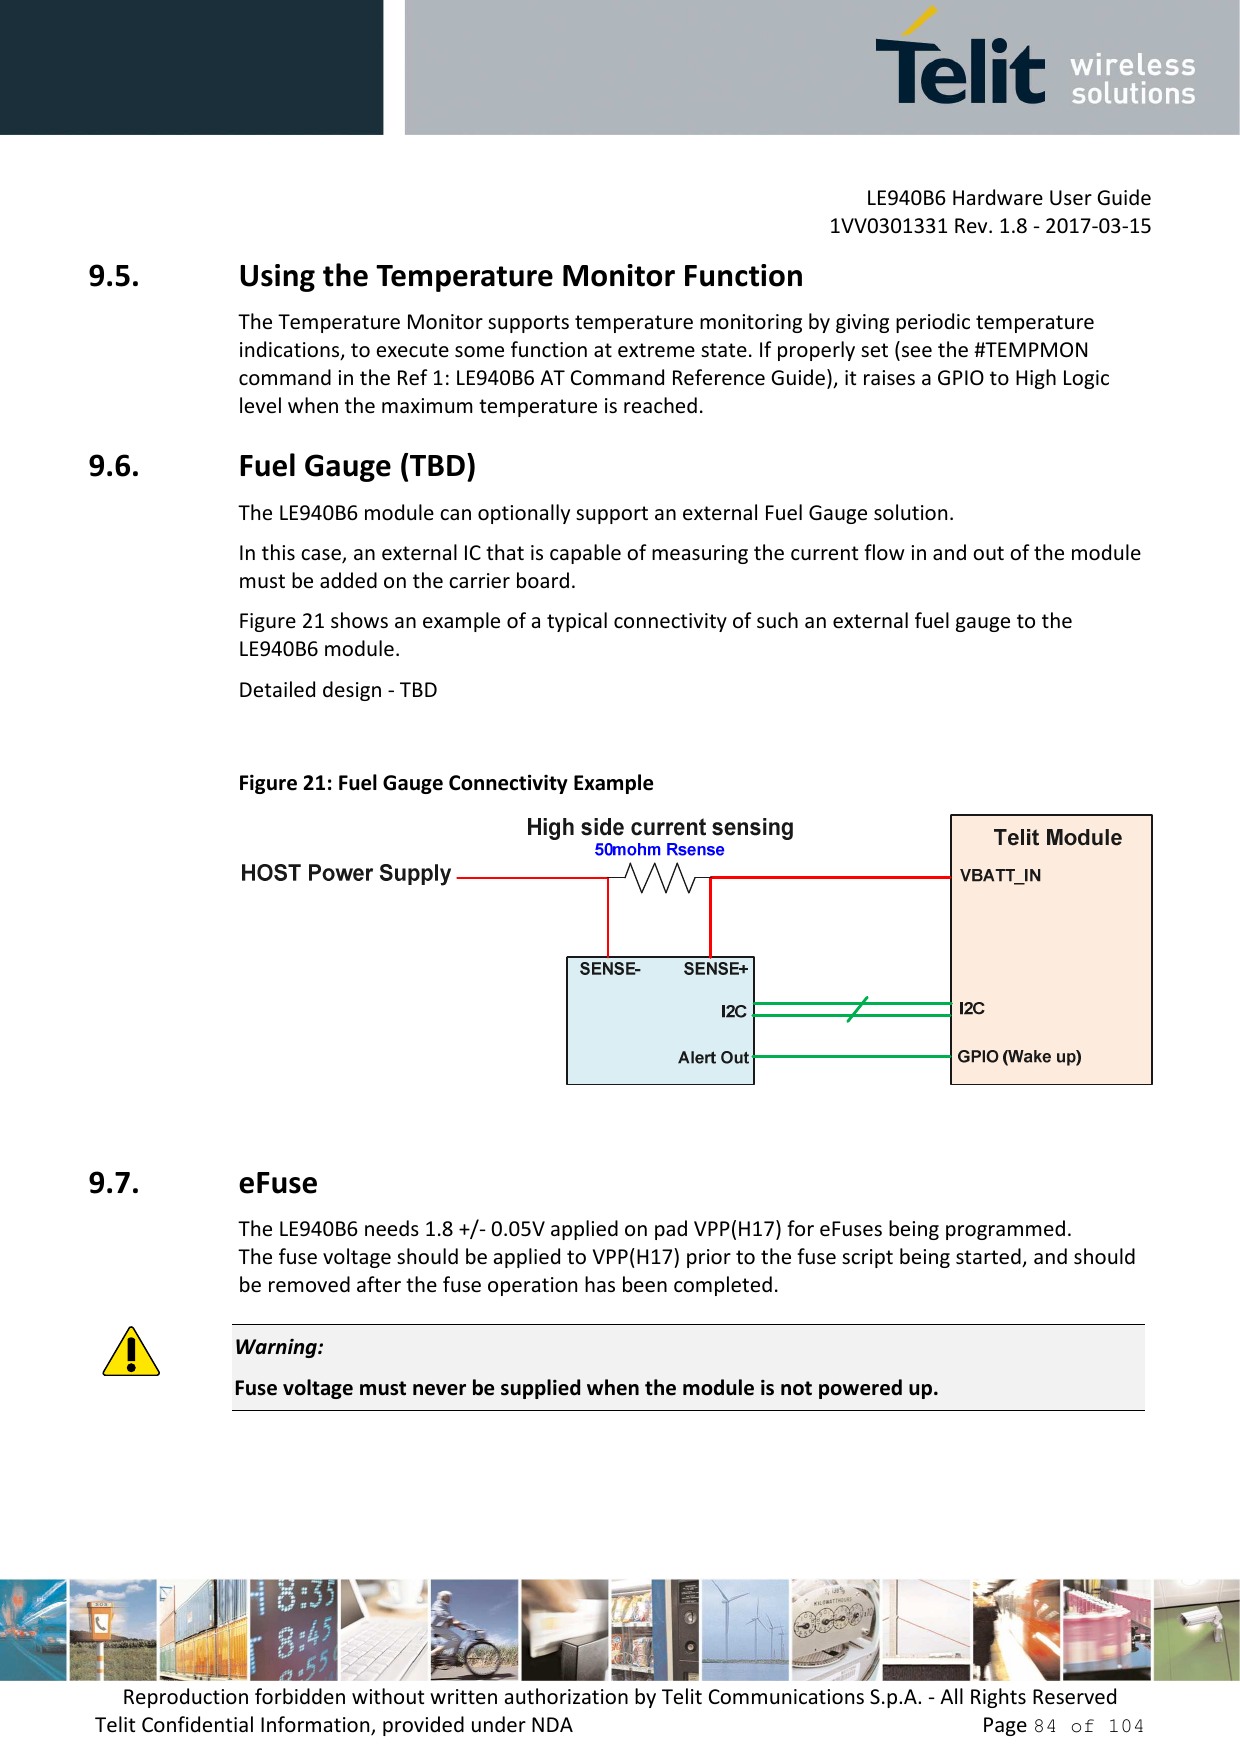 LE940B6 Hardware User Guide     1VV0301331 Rev. 1.8 - 2017-03-15 Reproduction forbidden without written authorization by Telit Communications S.p.A. - All Rights Reserved Telit Confidential Information, provided under NDA                 Page 84 of 104 9.5. Using the Temperature Monitor Function The Temperature Monitor supports temperature monitoring by giving periodic temperature indications, to execute some function at extreme state. If properly set (see the #TEMPMON command in the Ref 1: LE940B6 AT Command Reference Guide), it raises a GPIO to High Logic level when the maximum temperature is reached. 9.6. Fuel Gauge (TBD) The LE940B6 module can optionally support an external Fuel Gauge solution. In this case, an external IC that is capable of measuring the current flow in and out of the module must be added on the carrier board. Figure 21 shows an example of a typical connectivity of such an external fuel gauge to the LE940B6 module. Detailed design - TBD   Figure 21: Fuel Gauge Connectivity Example   9.7. eFuse The LE940B6 needs 1.8 +/- 0.05V applied on pad VPP(H17) for eFuses being programmed. The fuse voltage should be applied to VPP(H17) prior to the fuse script being started, and should be removed after the fuse operation has been completed.   Warning: Fuse voltage must never be supplied when the module is not powered up.